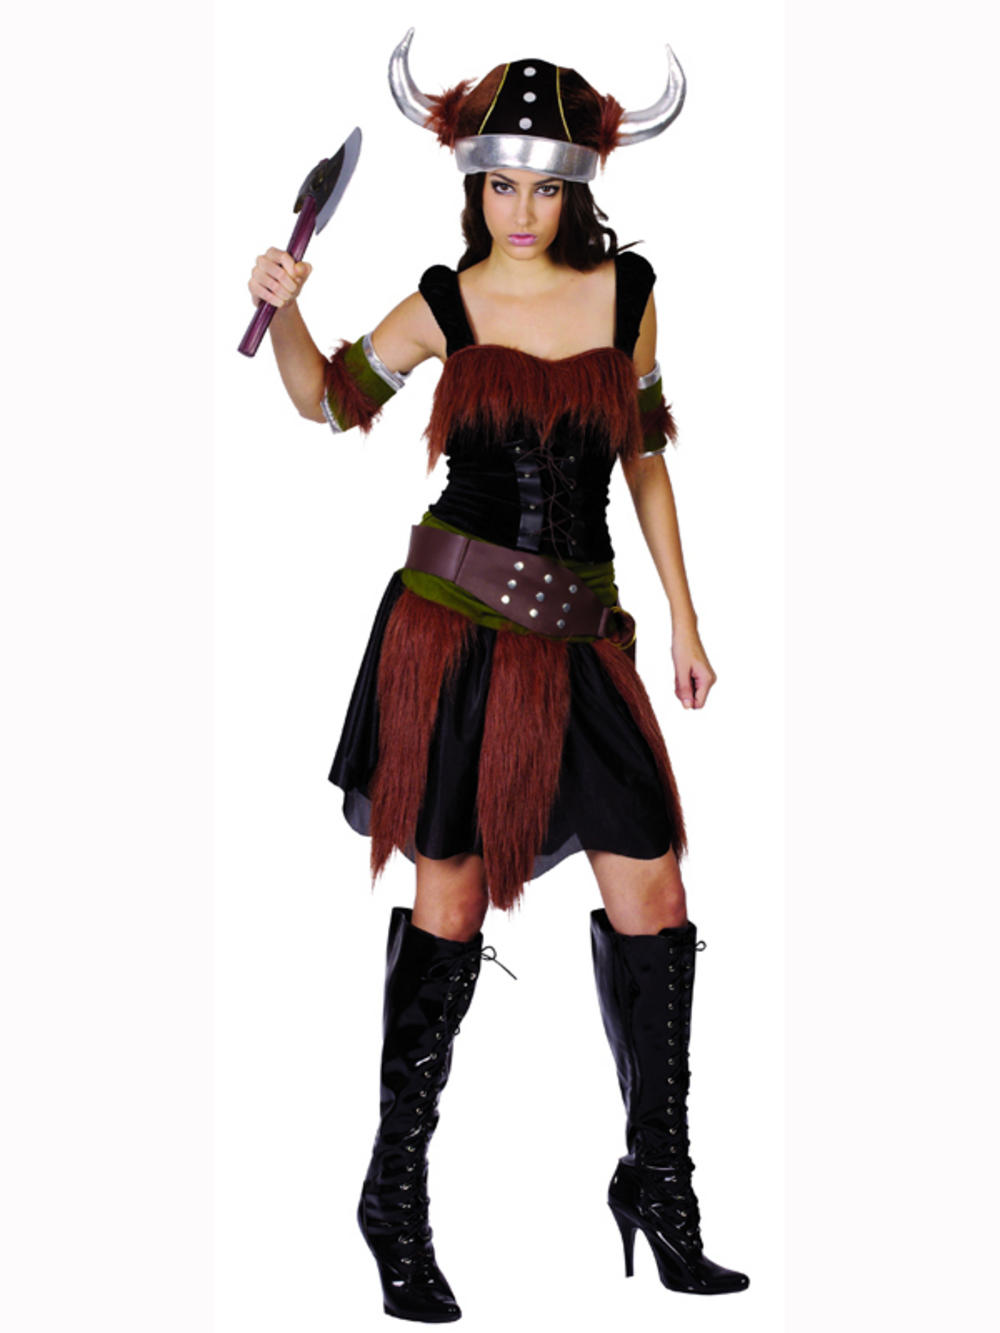 Perfect Girl39s Historical Viking Fancy Dress Costume By Wicked EG3586